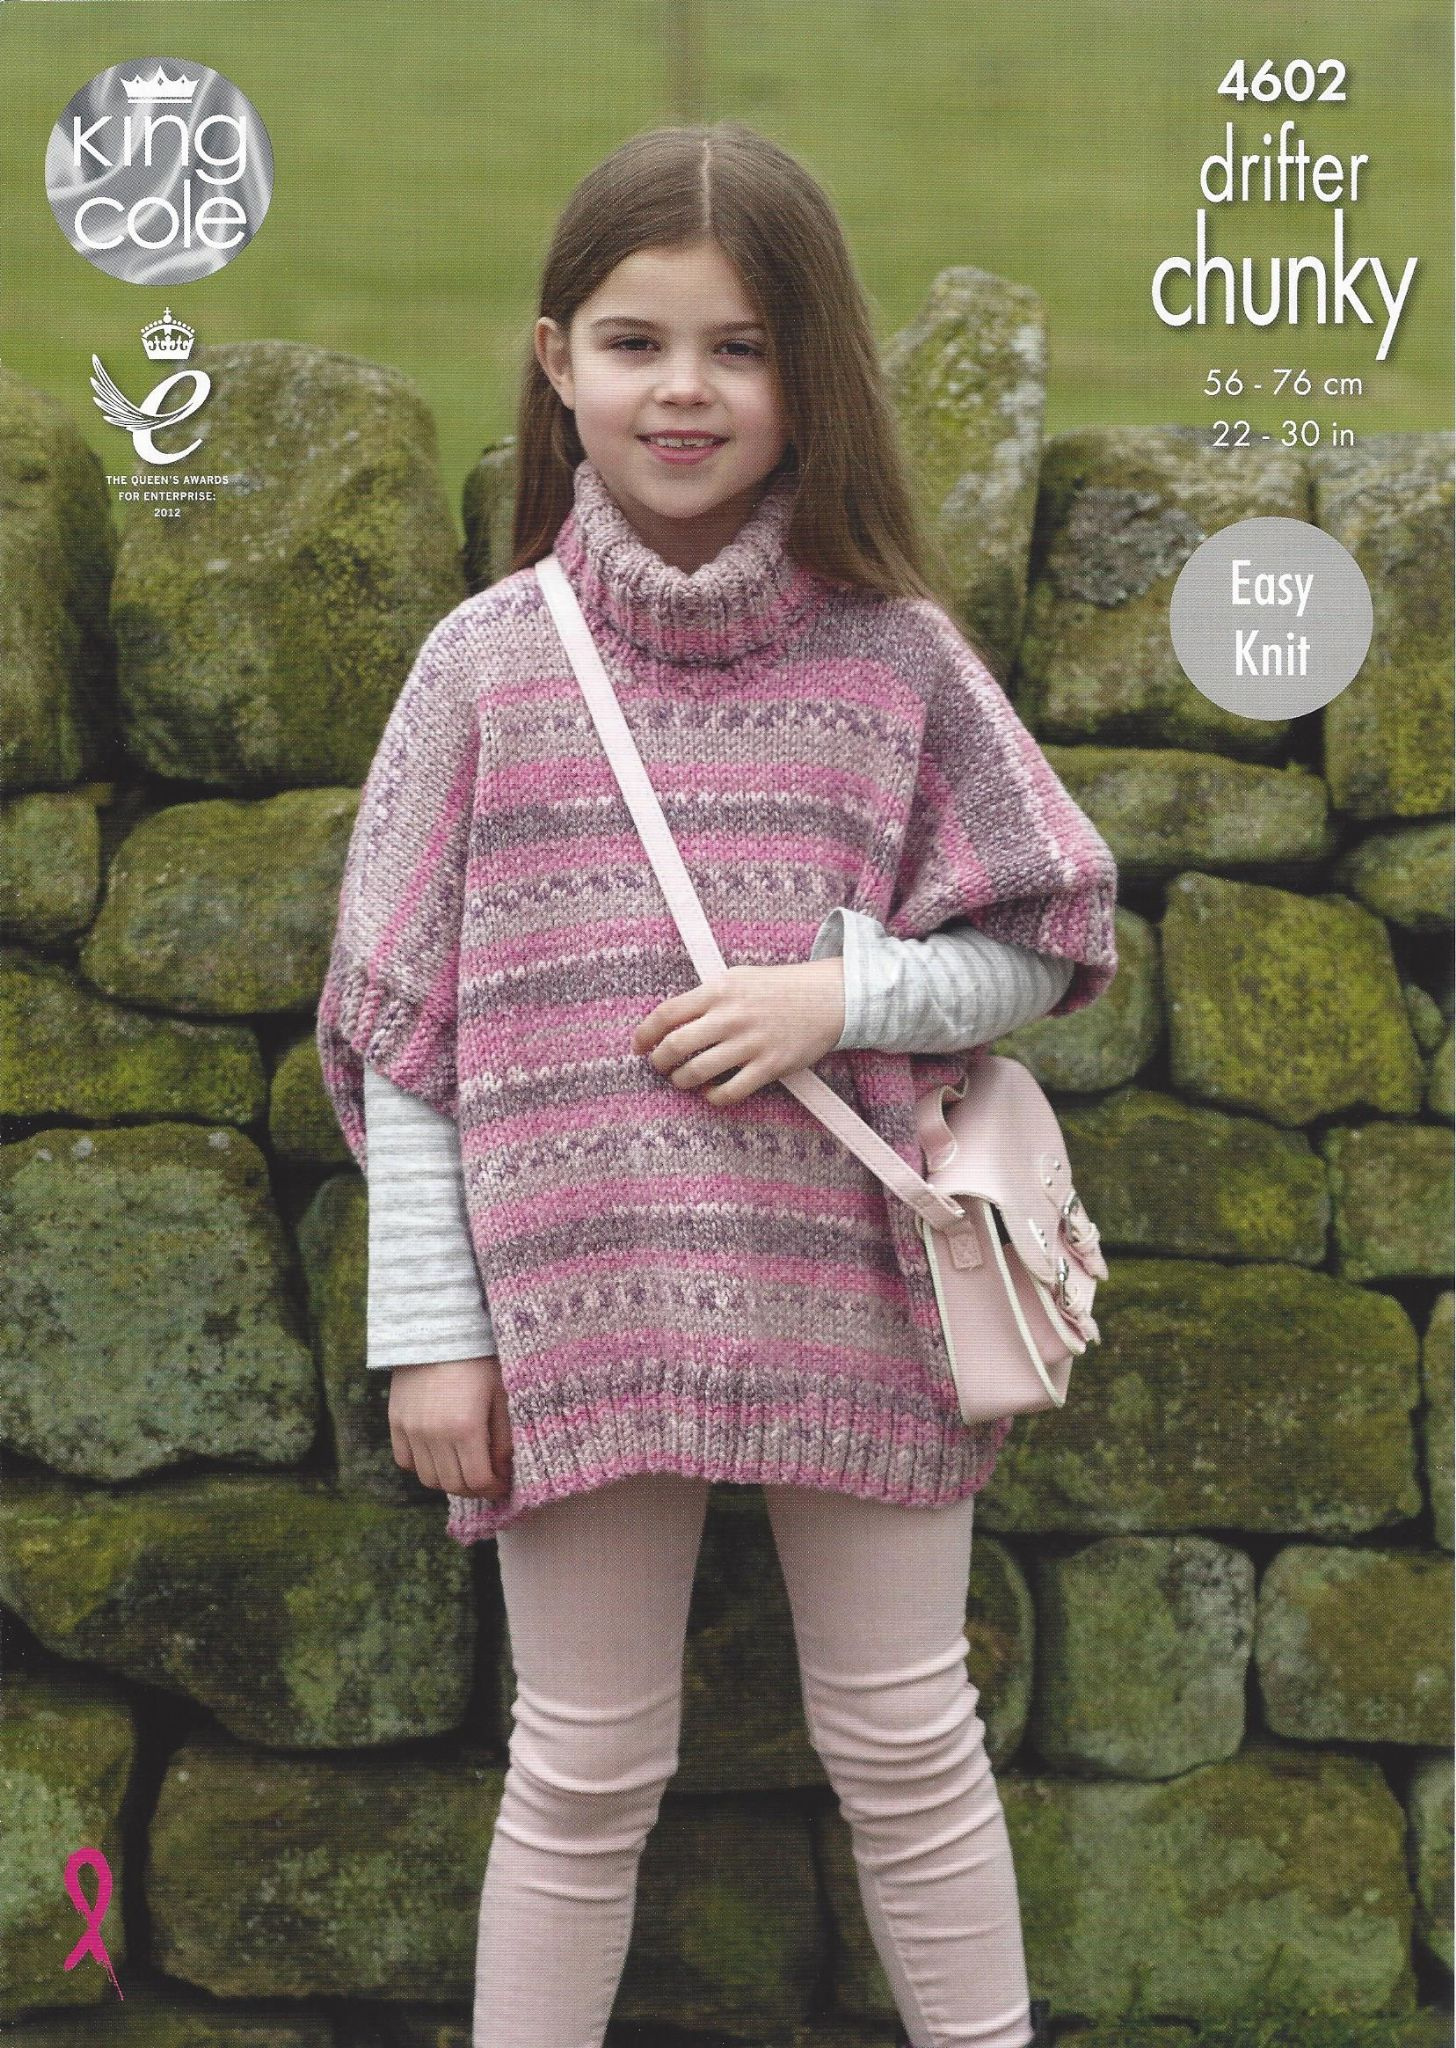 Poncho Knitting Pattern Chunky King Cole Drifter Chunky 4602 Poncho Knitting Pattern